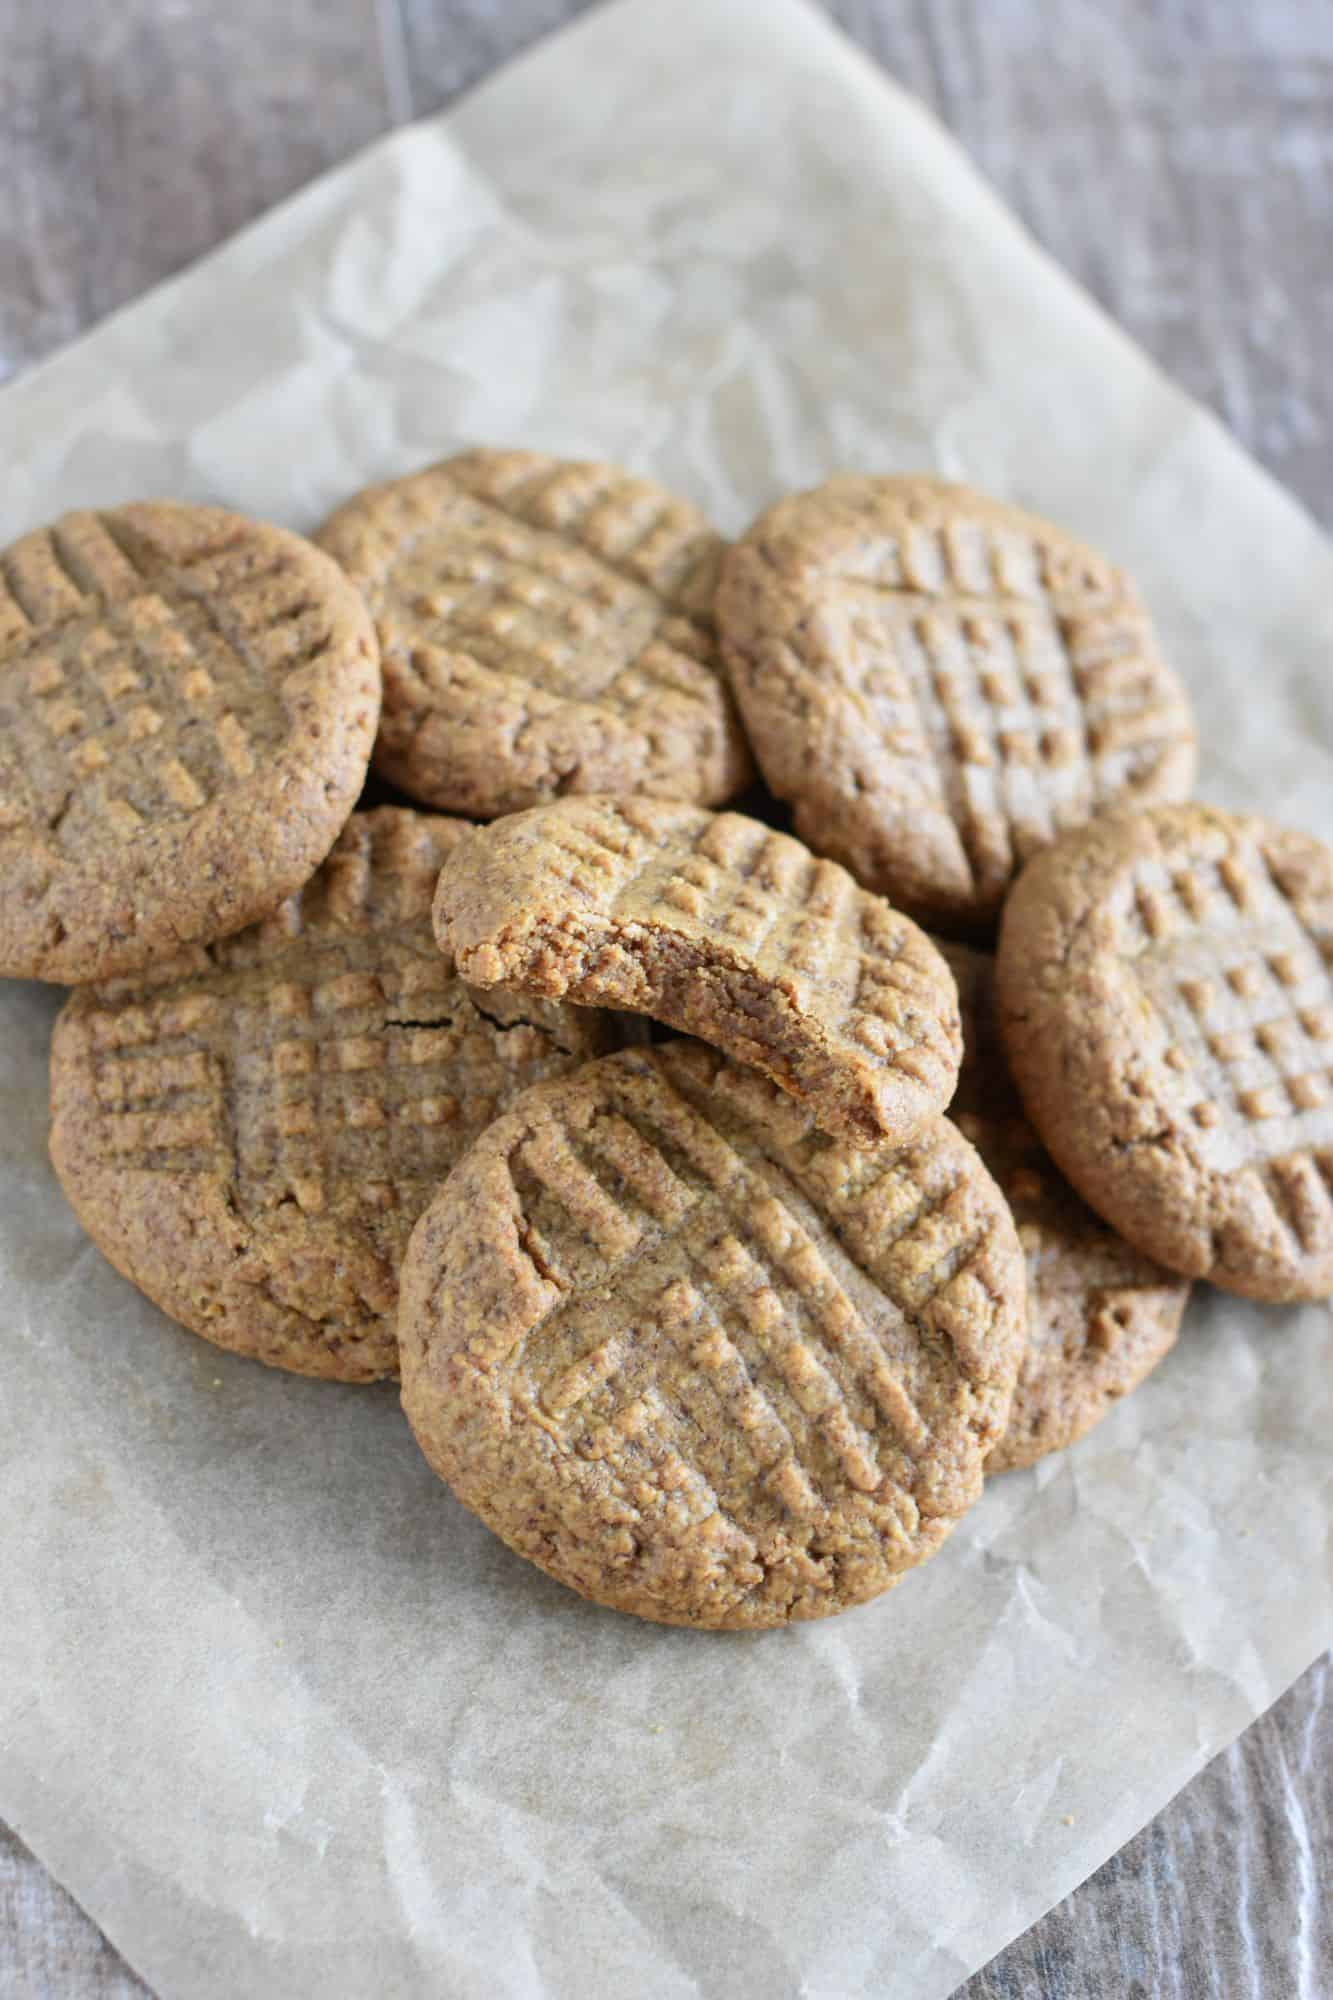 vegan peanut butter cookies on a piece of parchment paper with a bite taken out of one